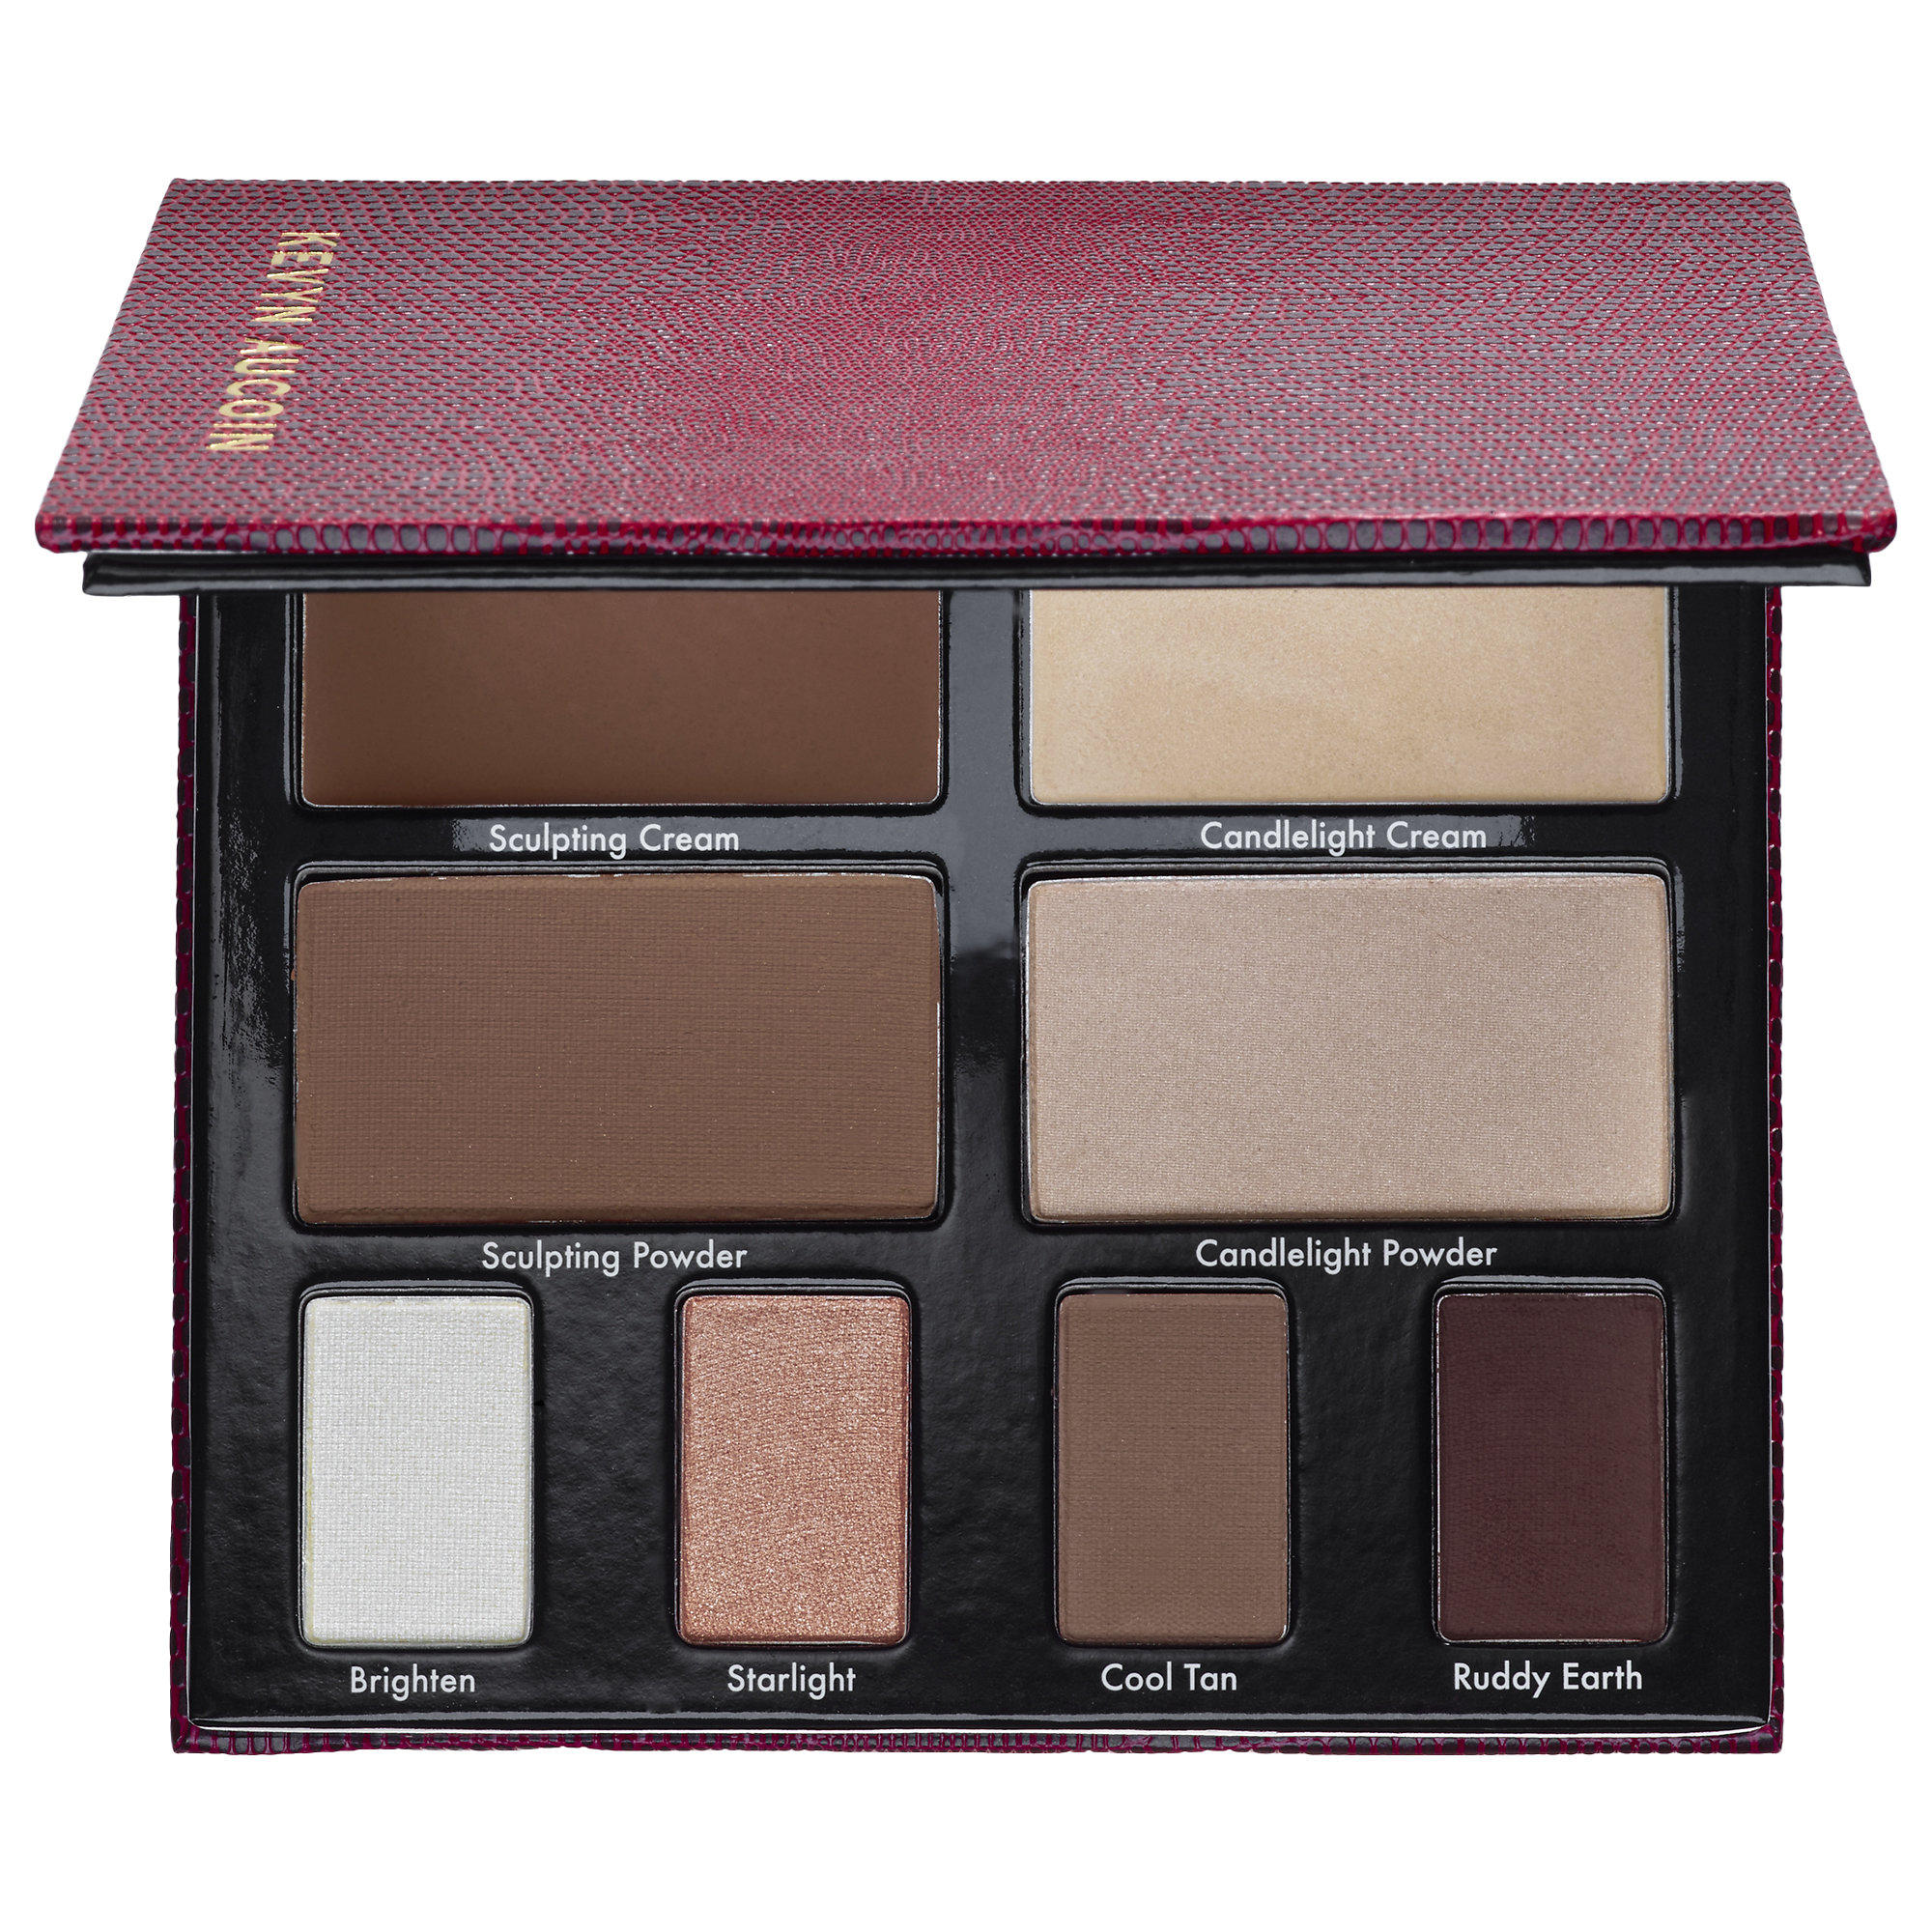 $65 Kevyn Aucoin launched New The Contour Book The Art of Sculpting + Defining Volume II